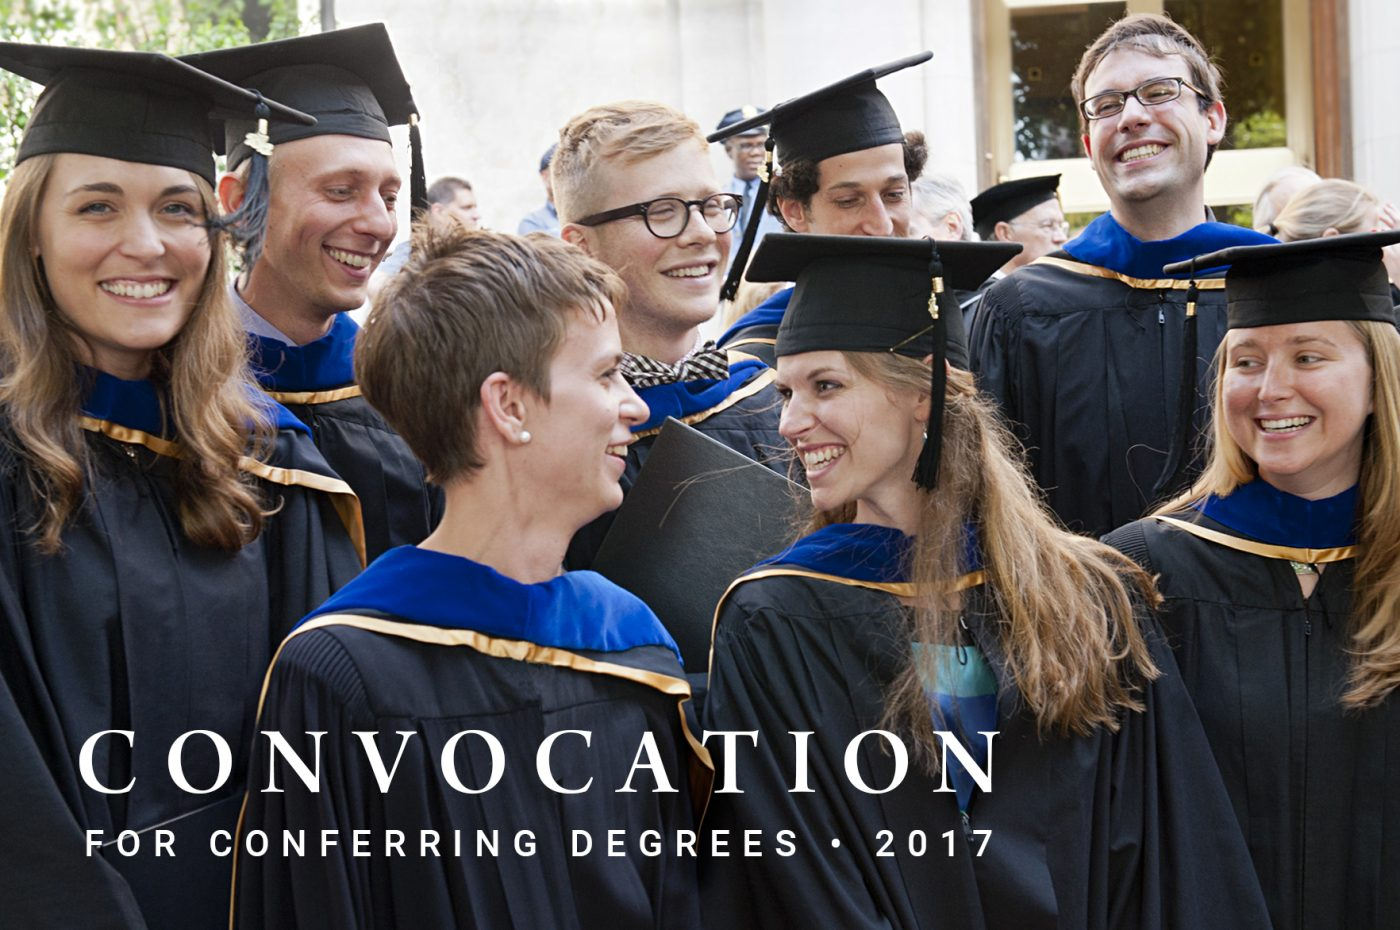 """Students in Cap and gown; text says """"Convocation for conferring Degrees, 2017"""""""